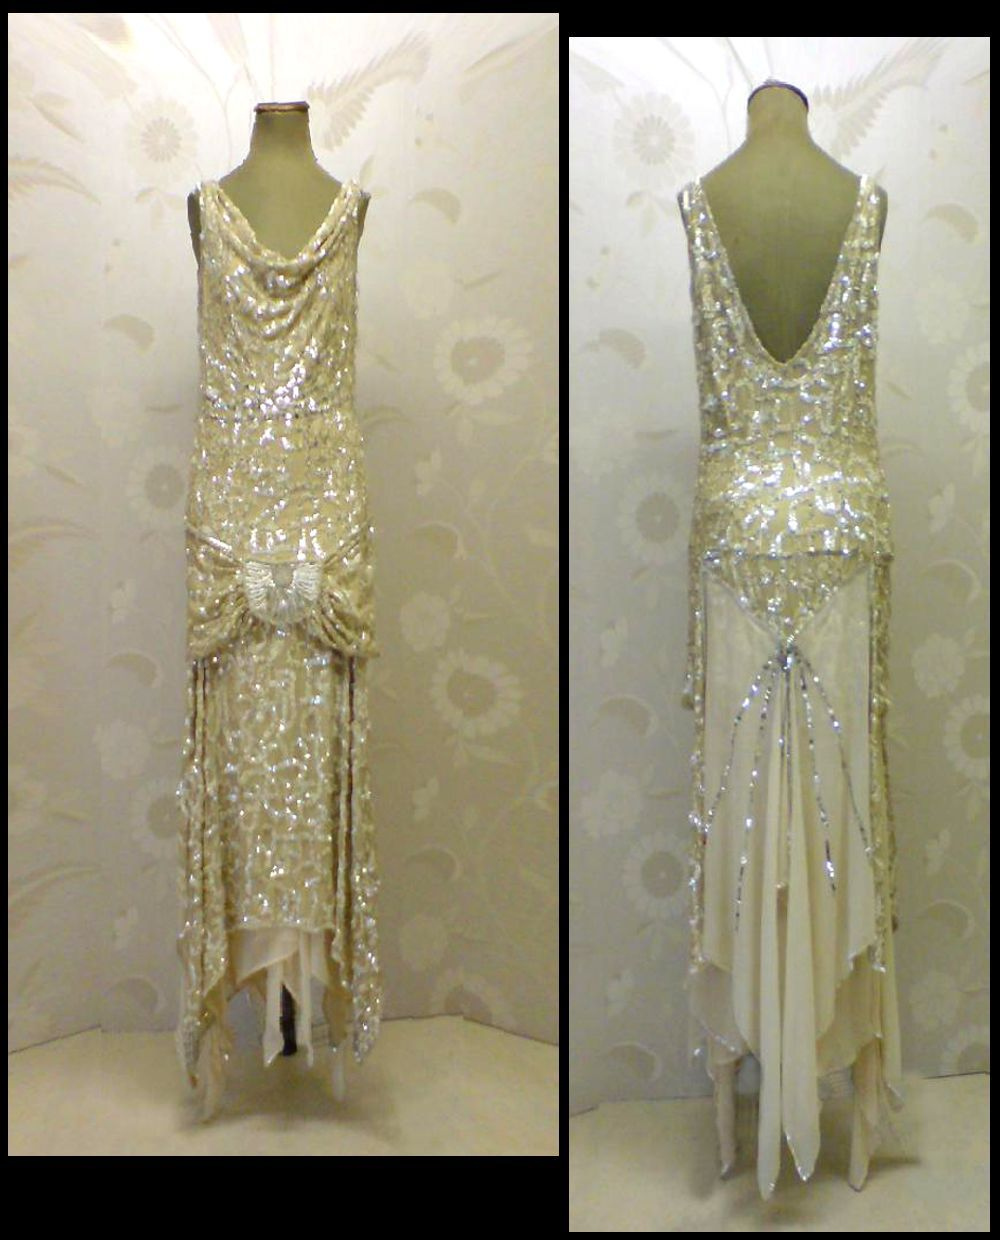 HISTORICAL DRESSES FOR 1920s PARTY | HISTORICAL DRESSES FOR 1920s ...